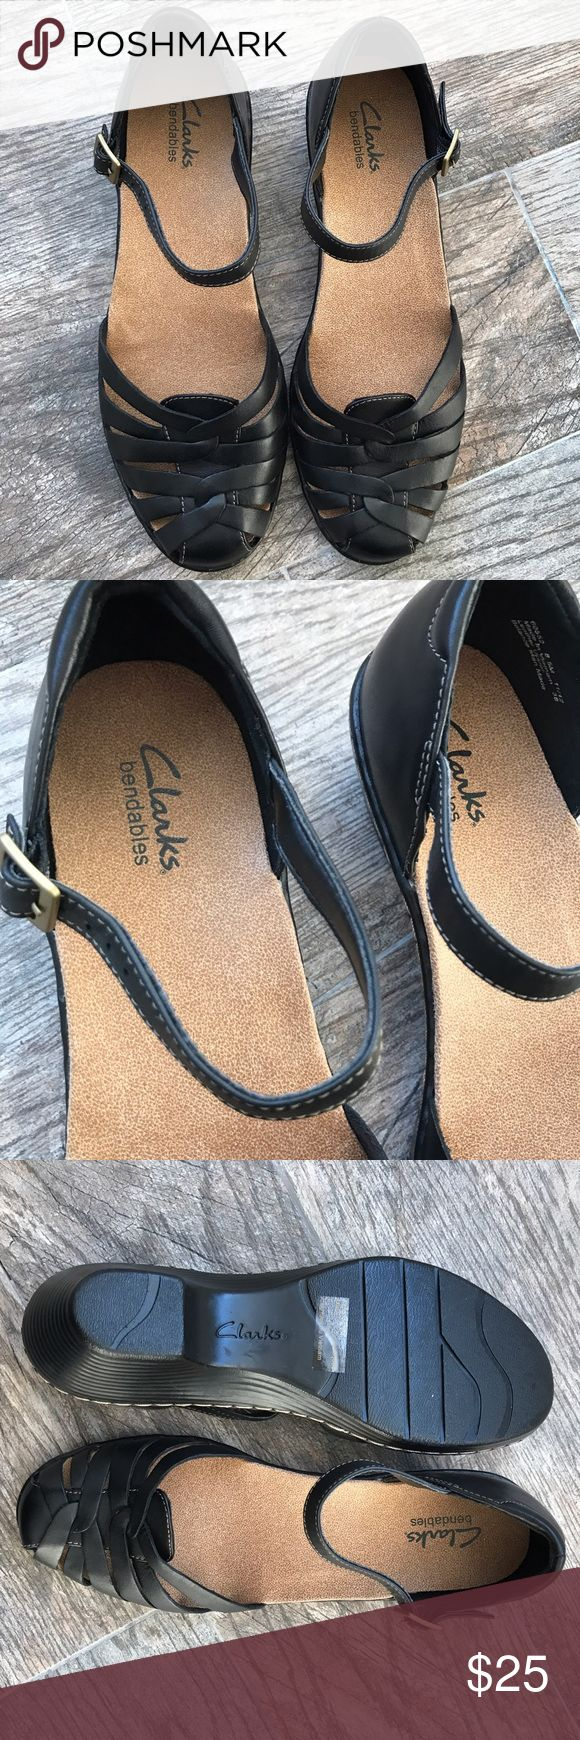 Clarks Bendable Black Leather Slingback Sandals Clarks Bendable Black Leather Slingback Sandals. These sandals have never been worn. Size 6.5. If you have ever worn Clarks before, then you know how comfortable they are to wear. Clarks Shoes Sandals